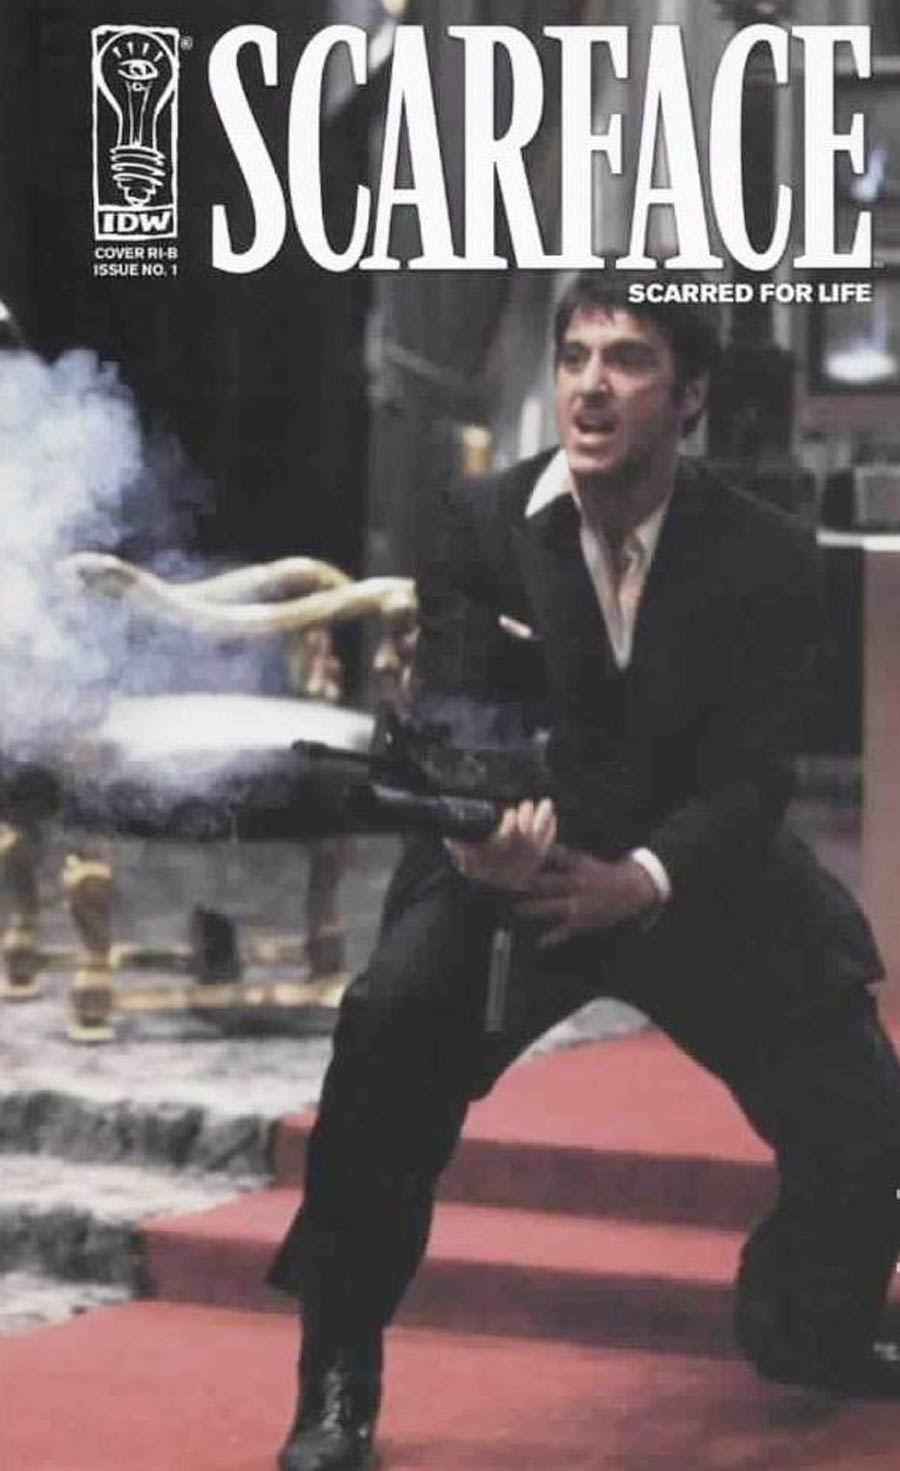 Scarface Scarred For Life #1 Cover D Incentive Movie Photo Cover